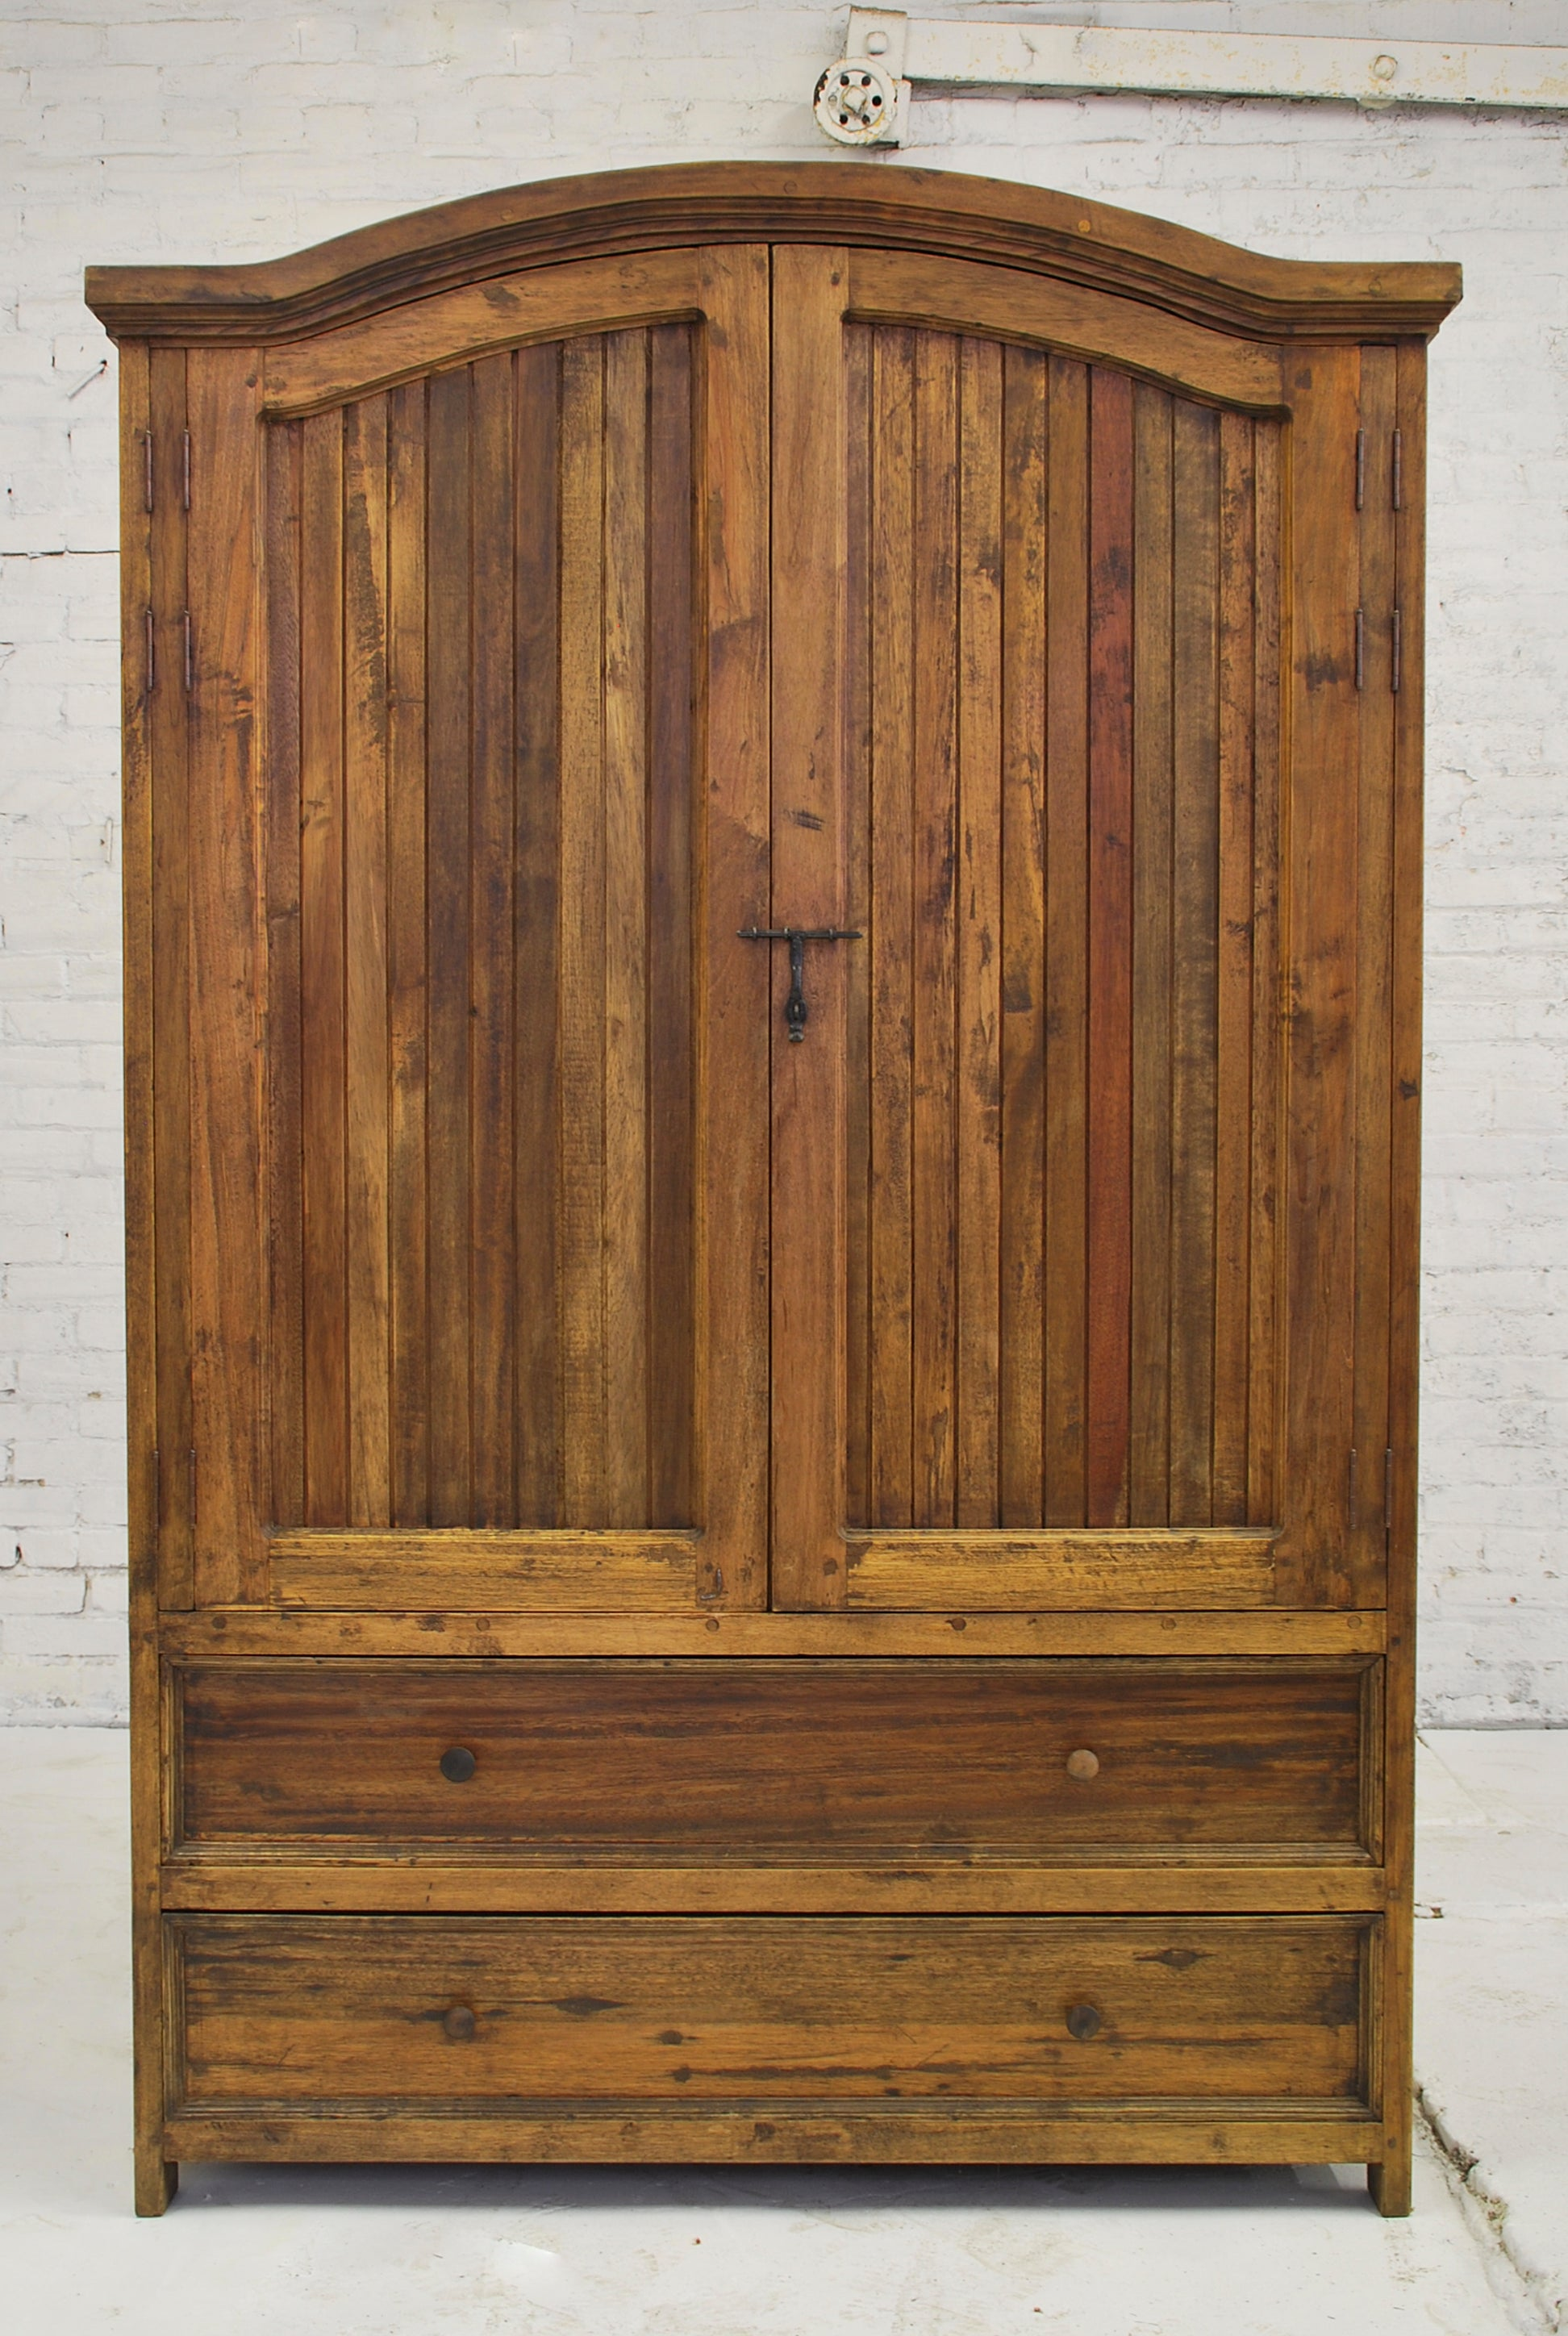 Barn Wood Armoire - Strip Panels and Hidden Doors  AR-020